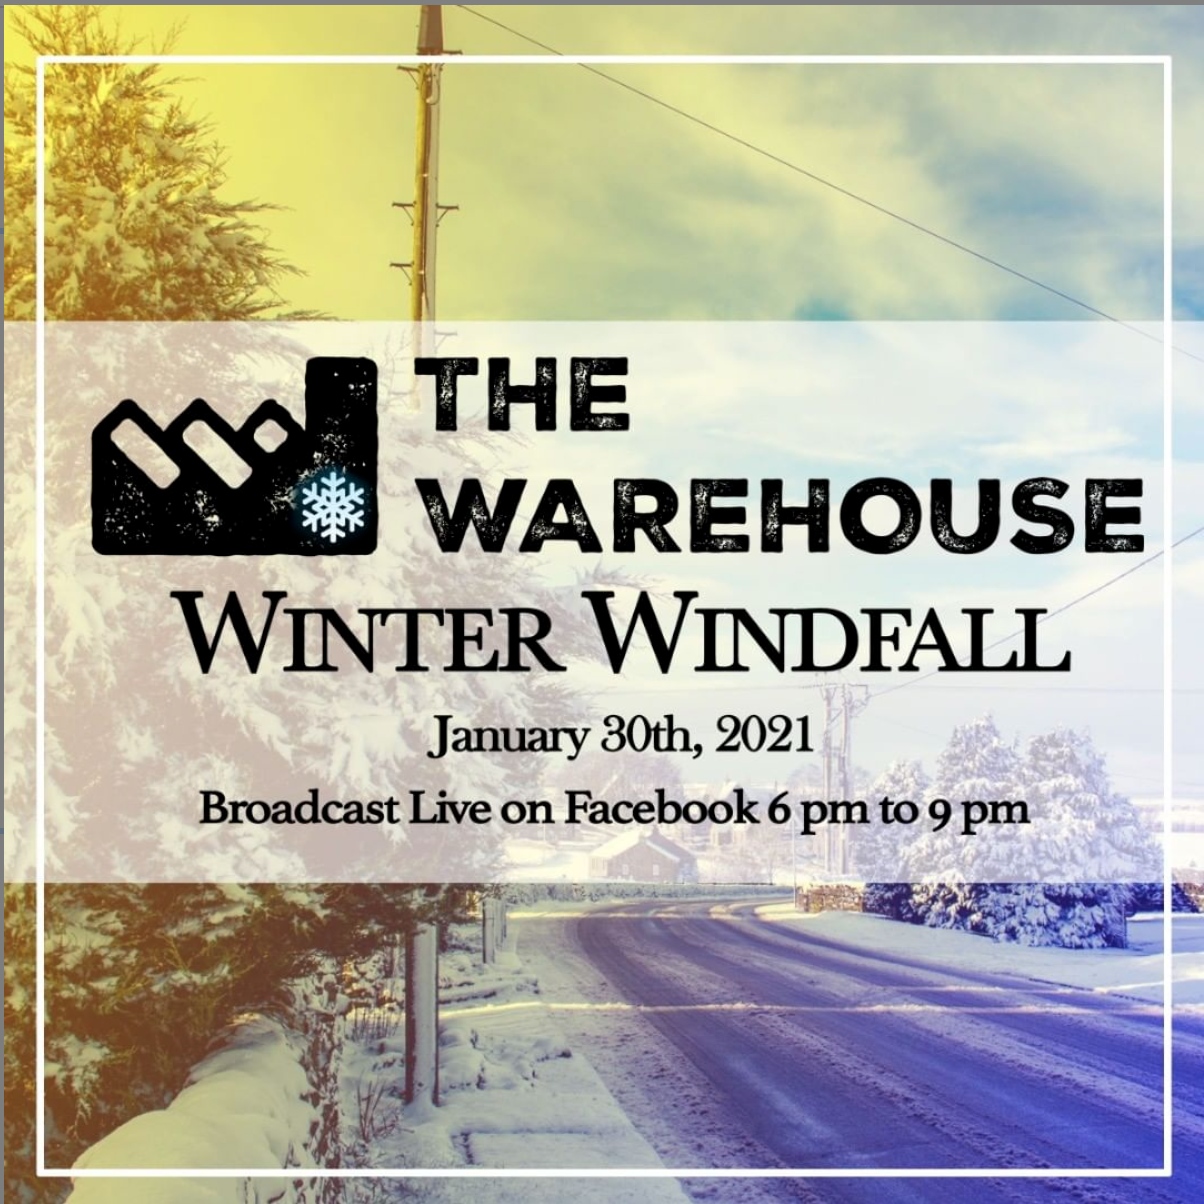 The Warehouse Winter Windfall 2021 image